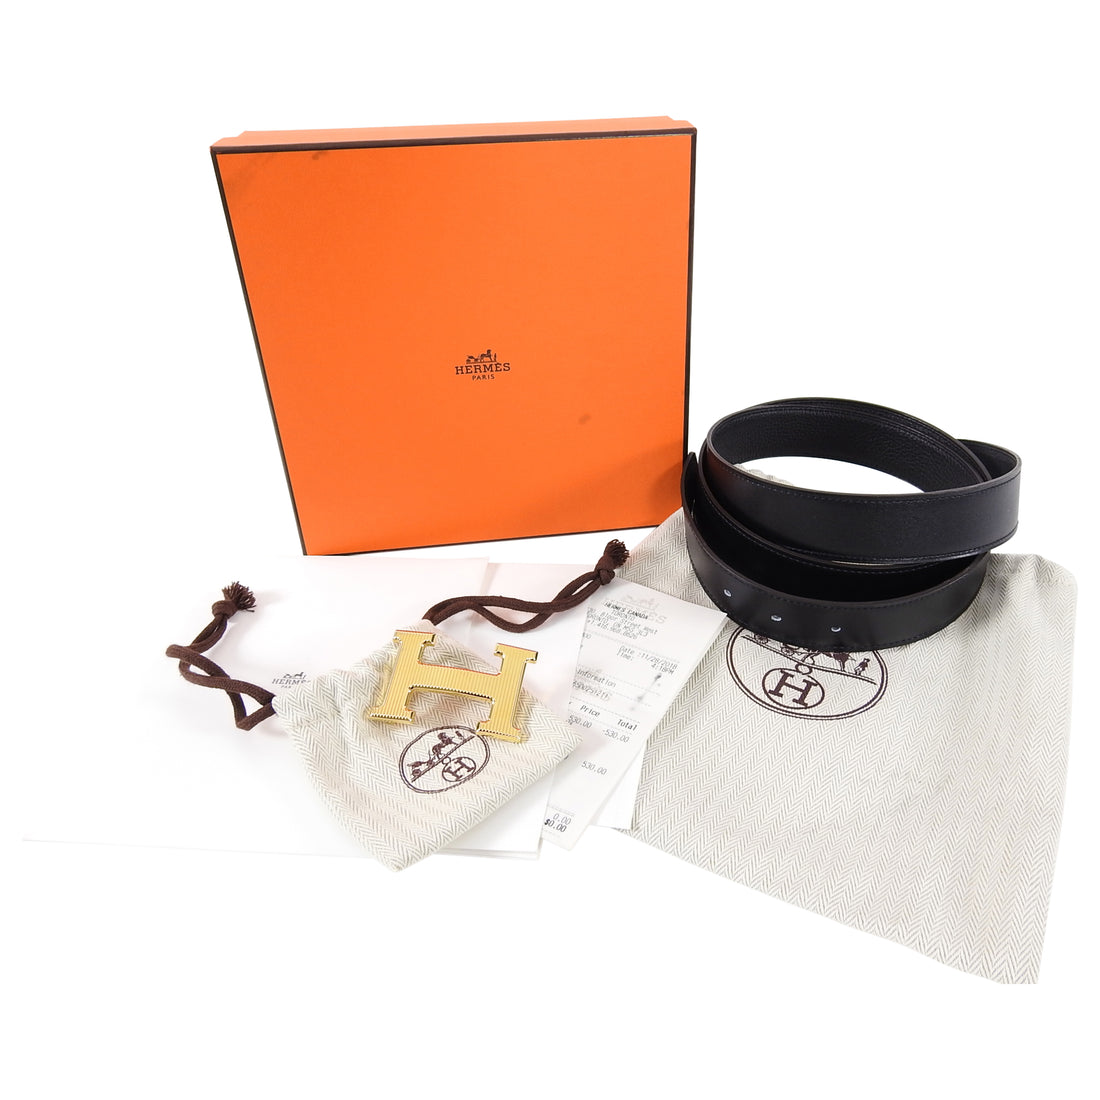 Hermes Constance H Belt Kit Black and Gold 32mm - Size 105